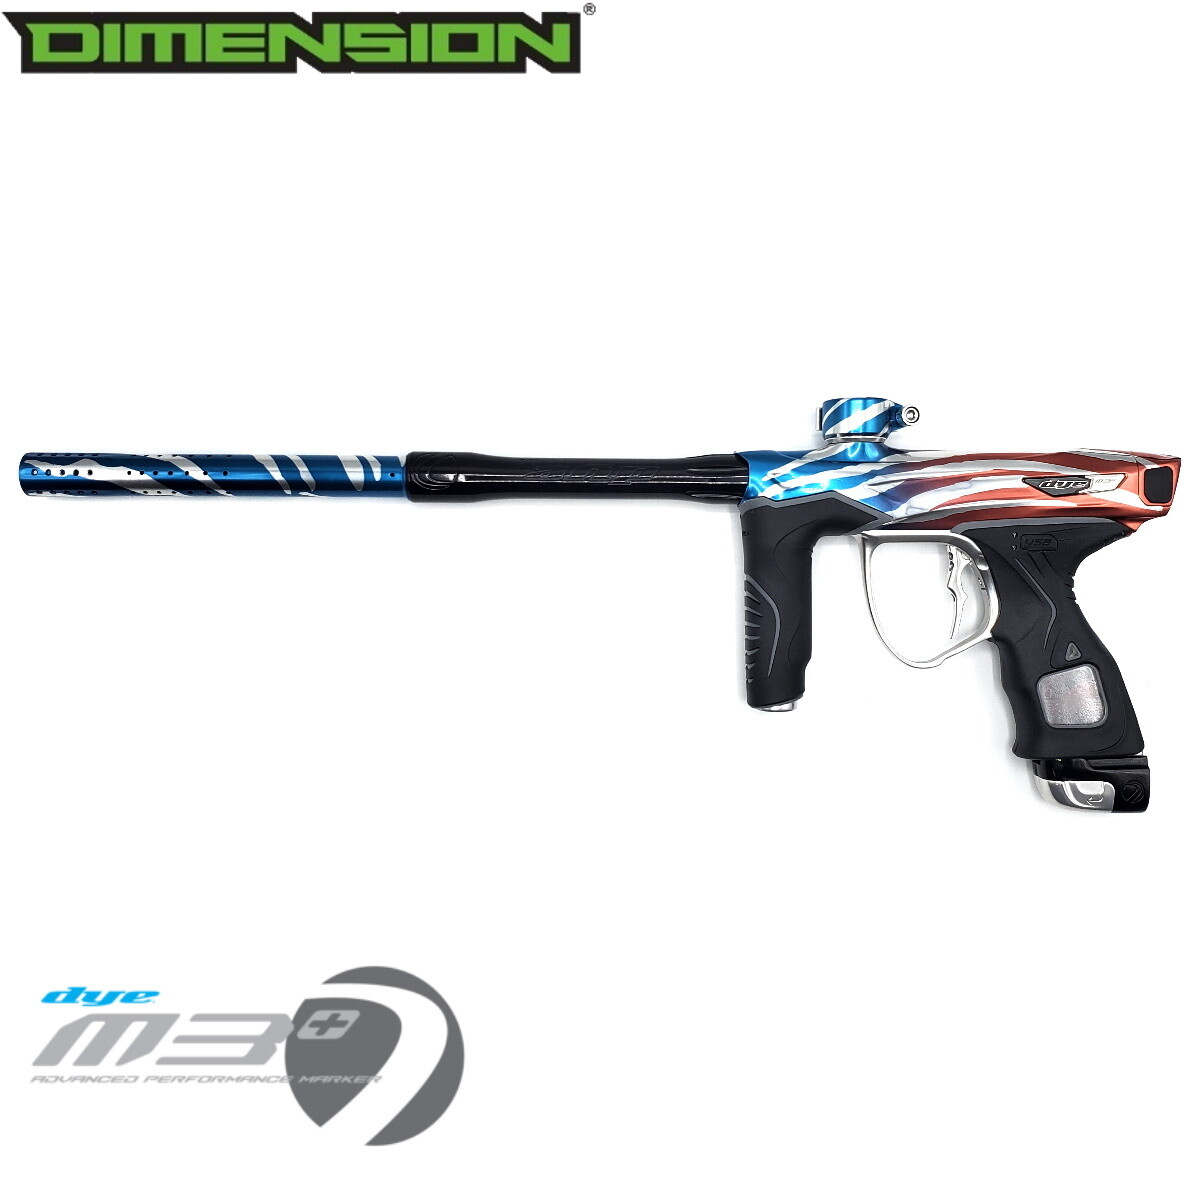 Dye M3+ - Dimension Limited Edition 1 of 1 / Tiger Royalty - Old Glory